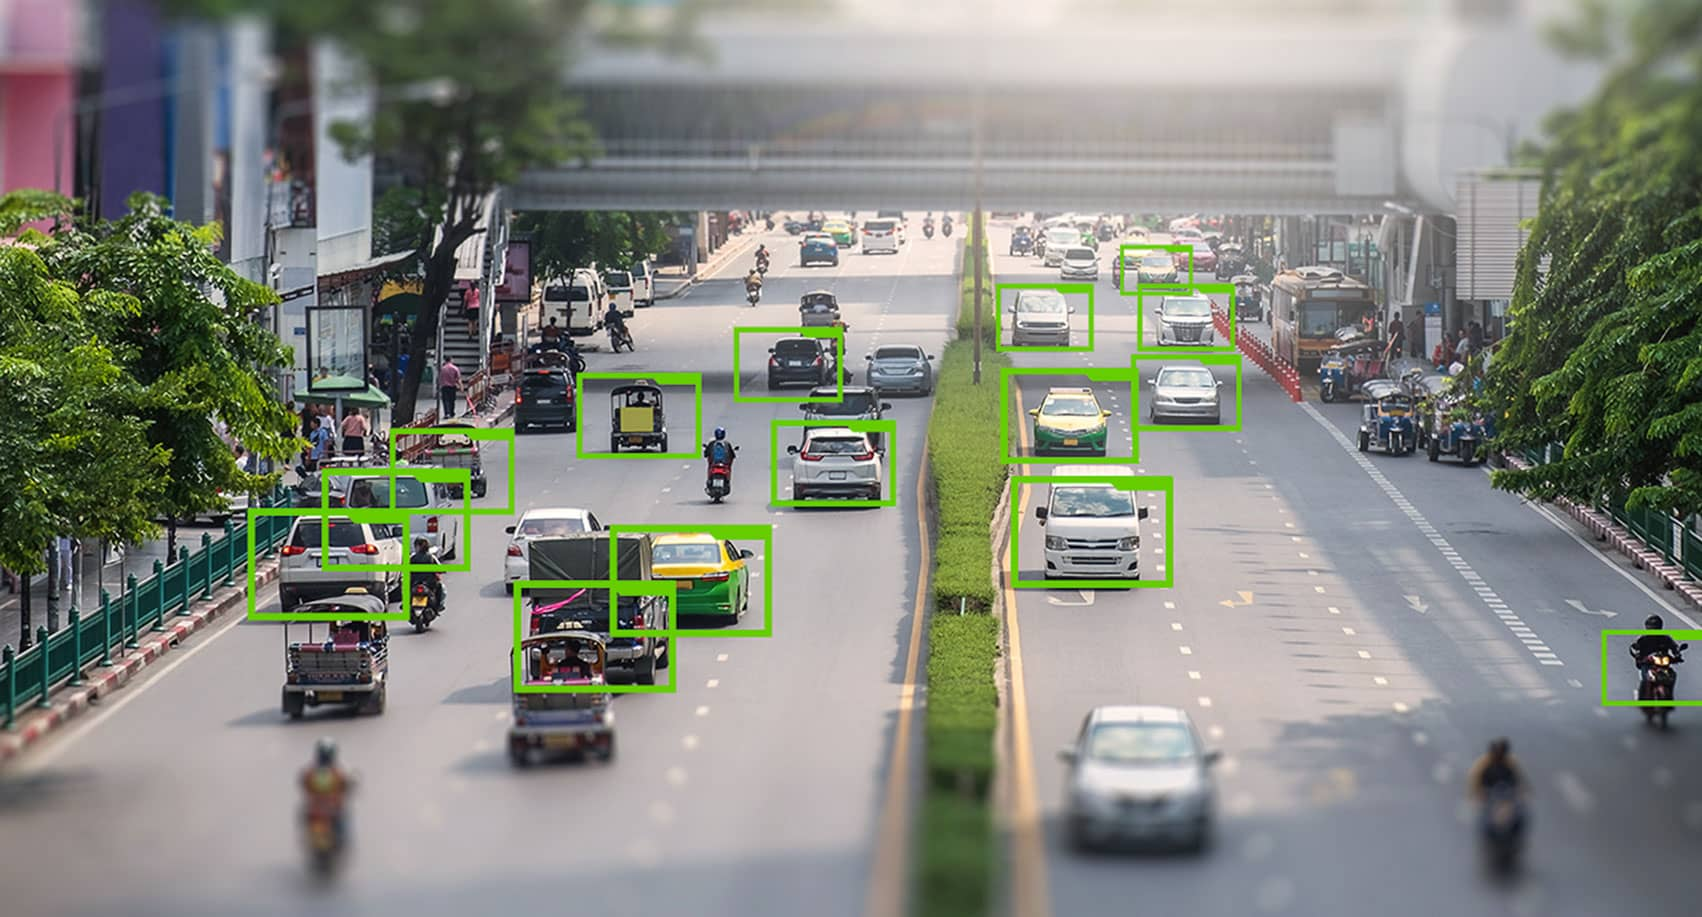 A busy street with traffic and people, which have been highlighted for AI data software